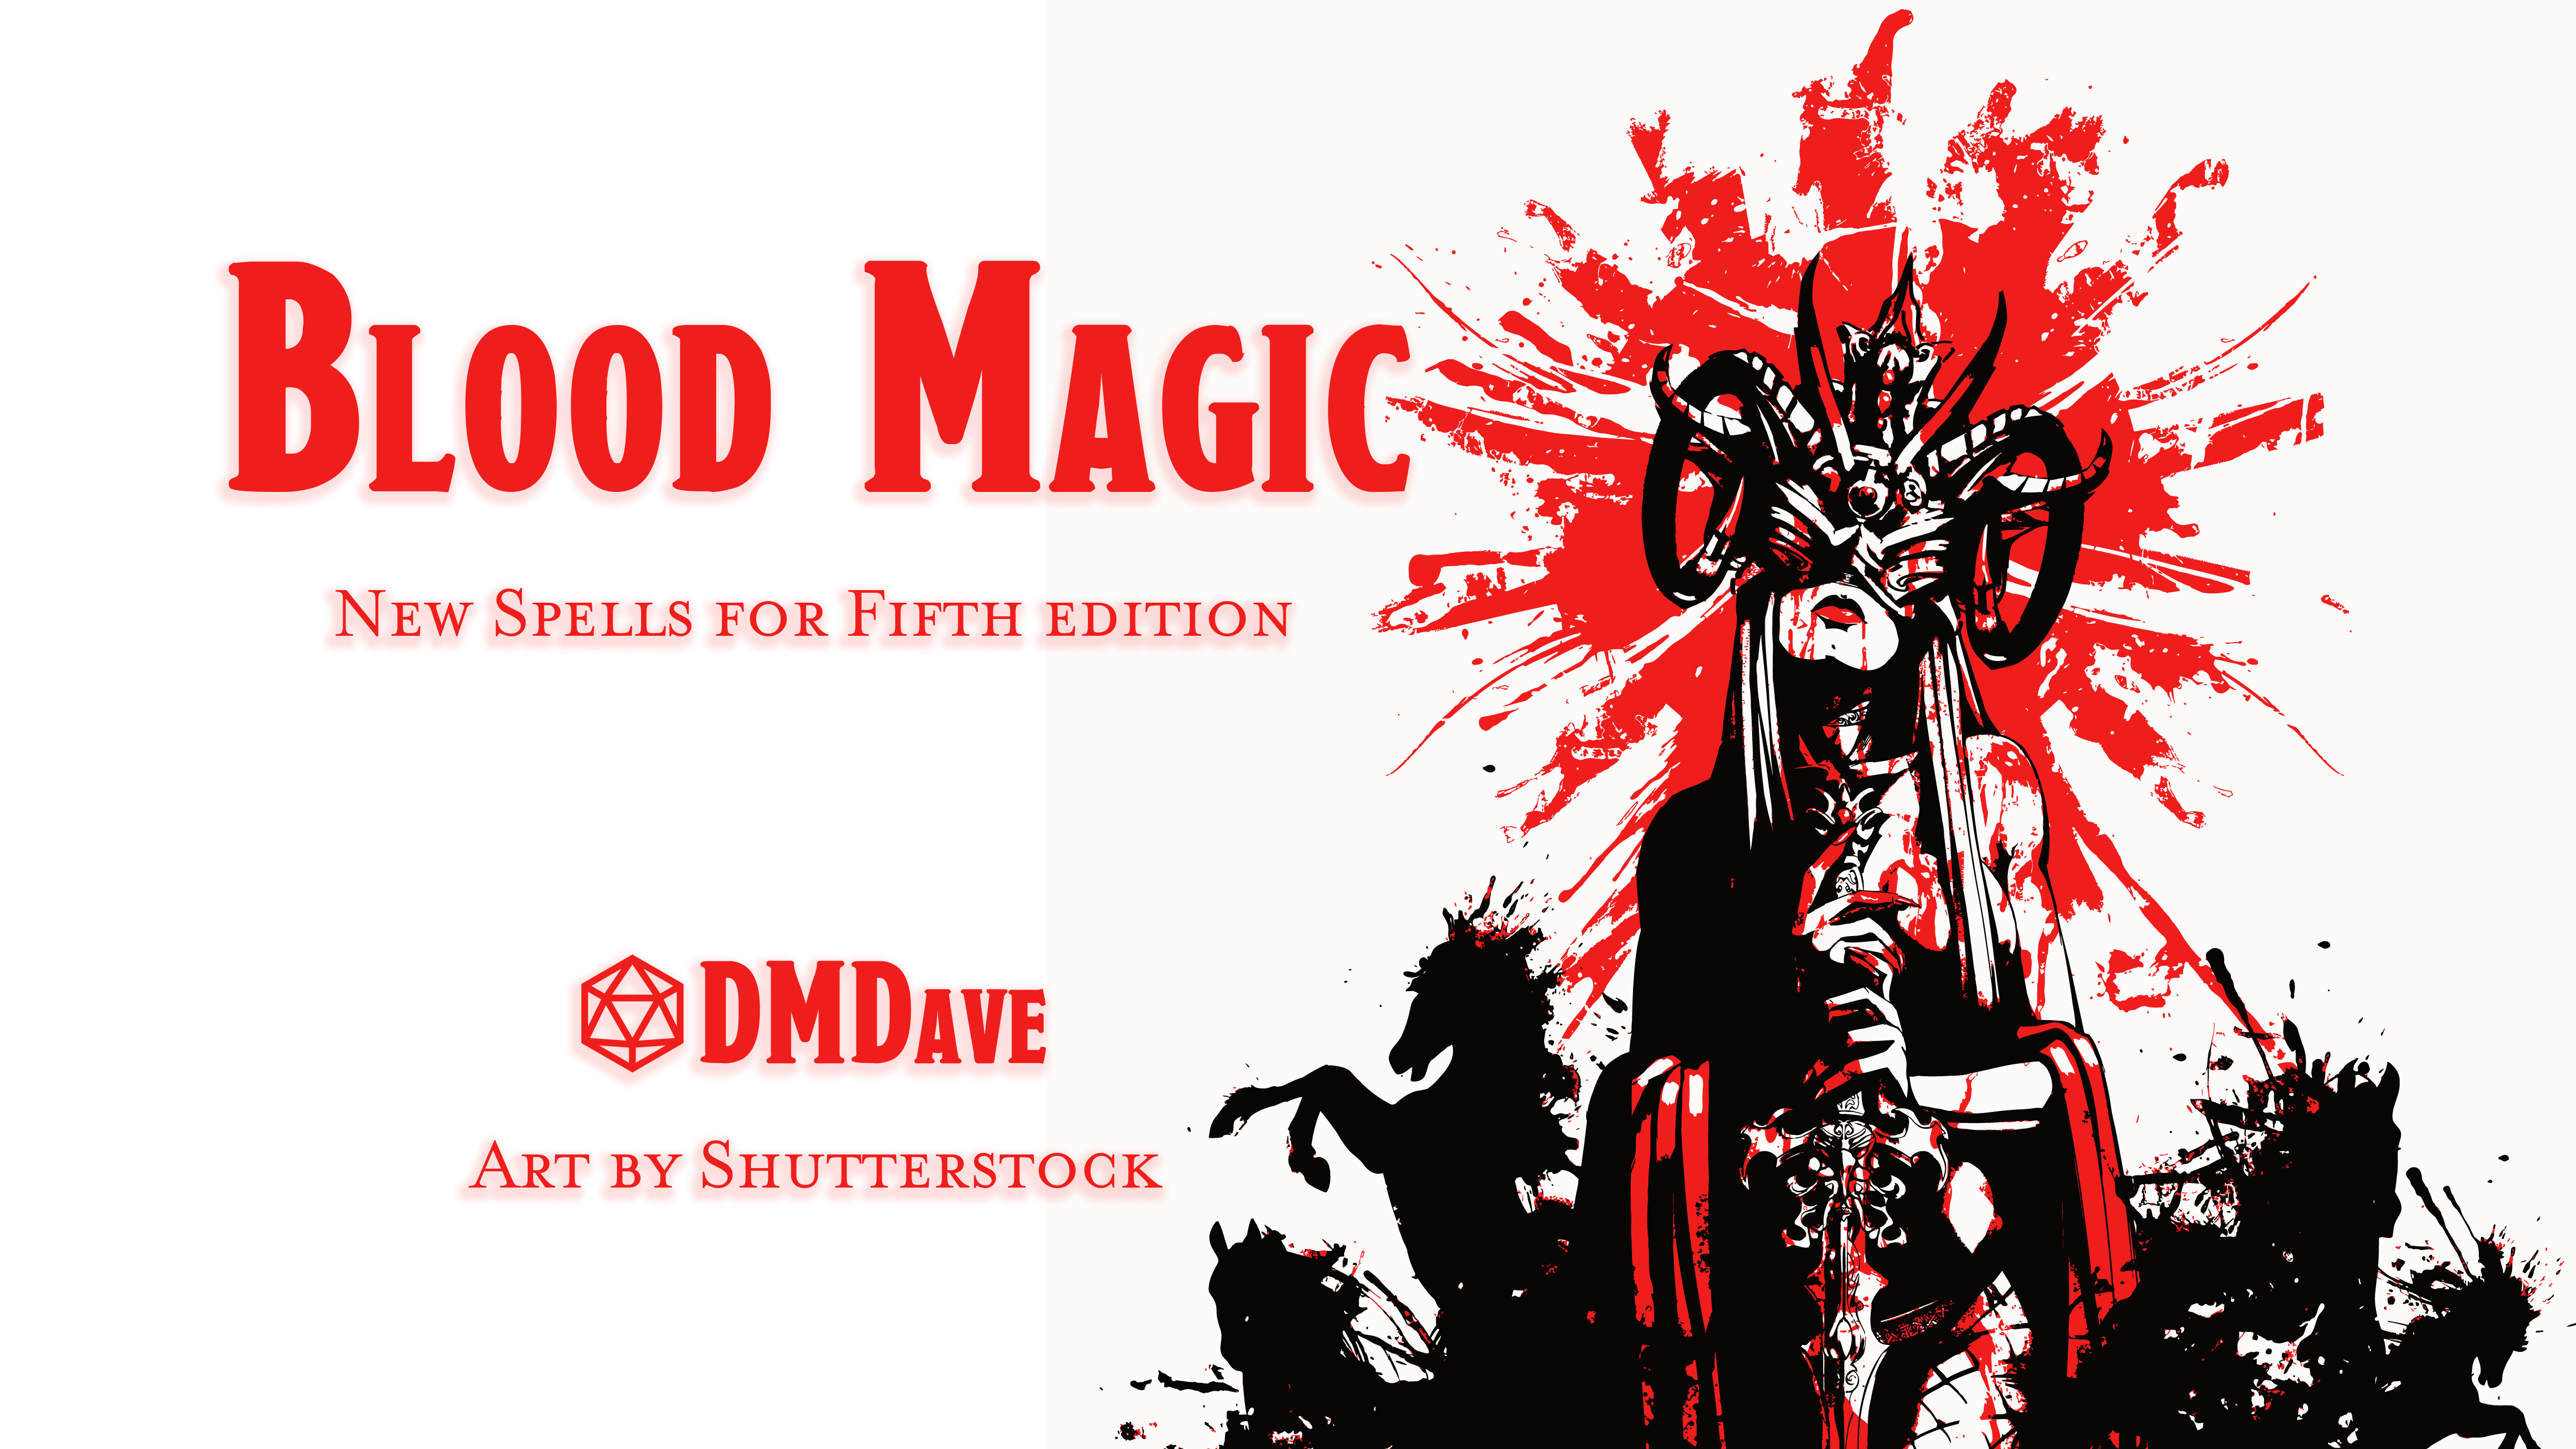 Blood Magic | New Spells for Fifth Edition